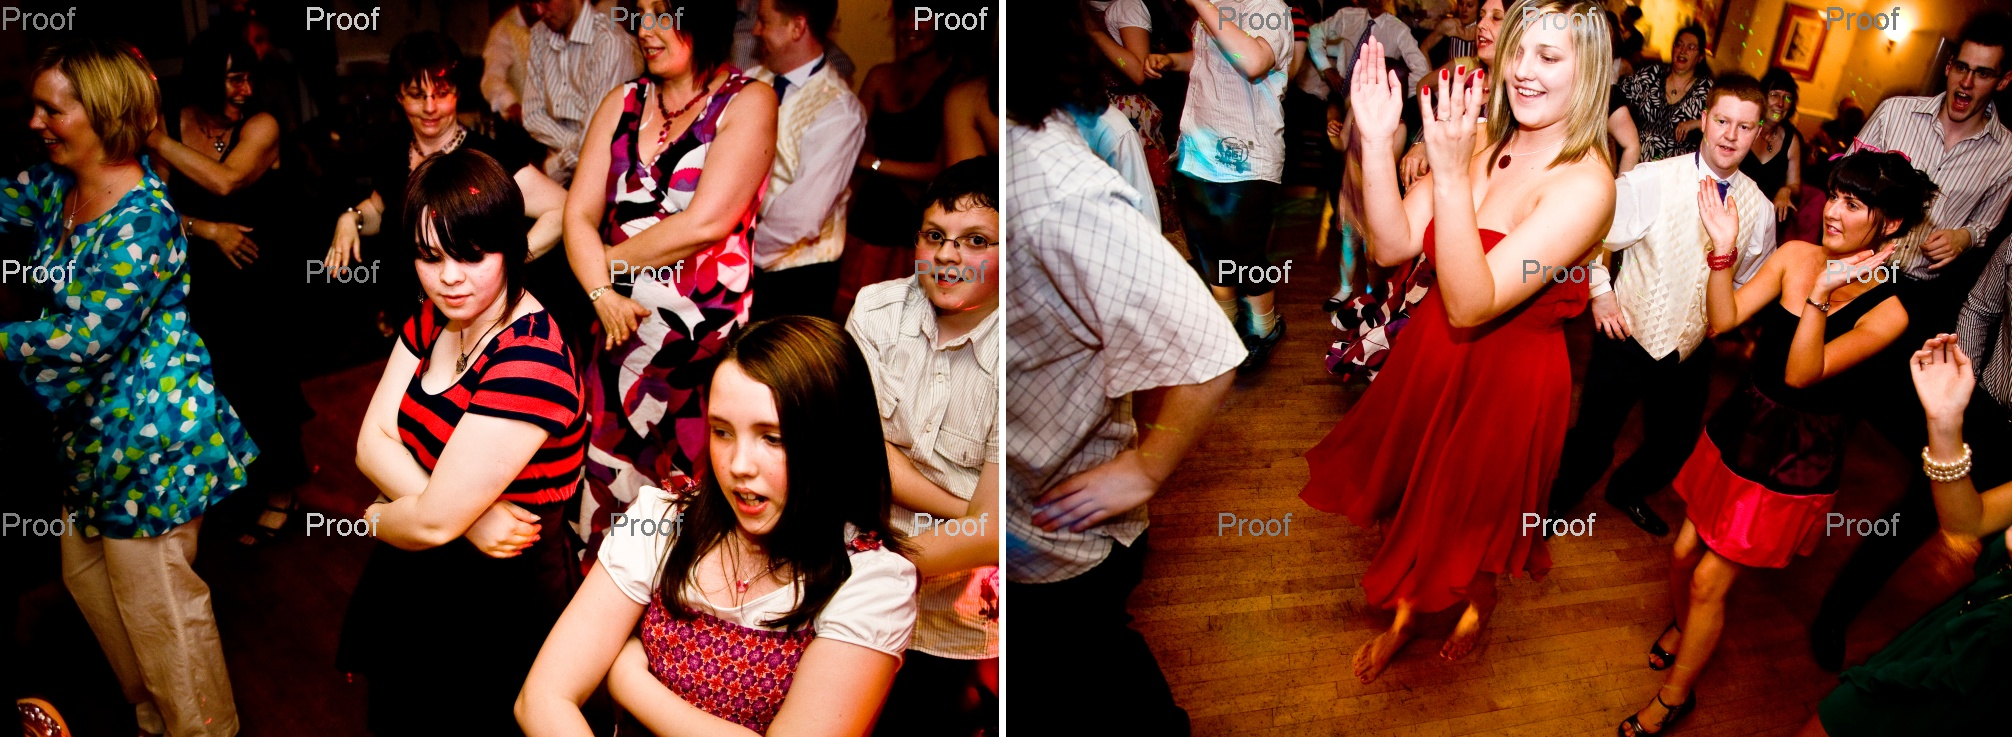 good fun dancing at evening wedding reception near Leeds pages 56-57 by Reel Life Photos